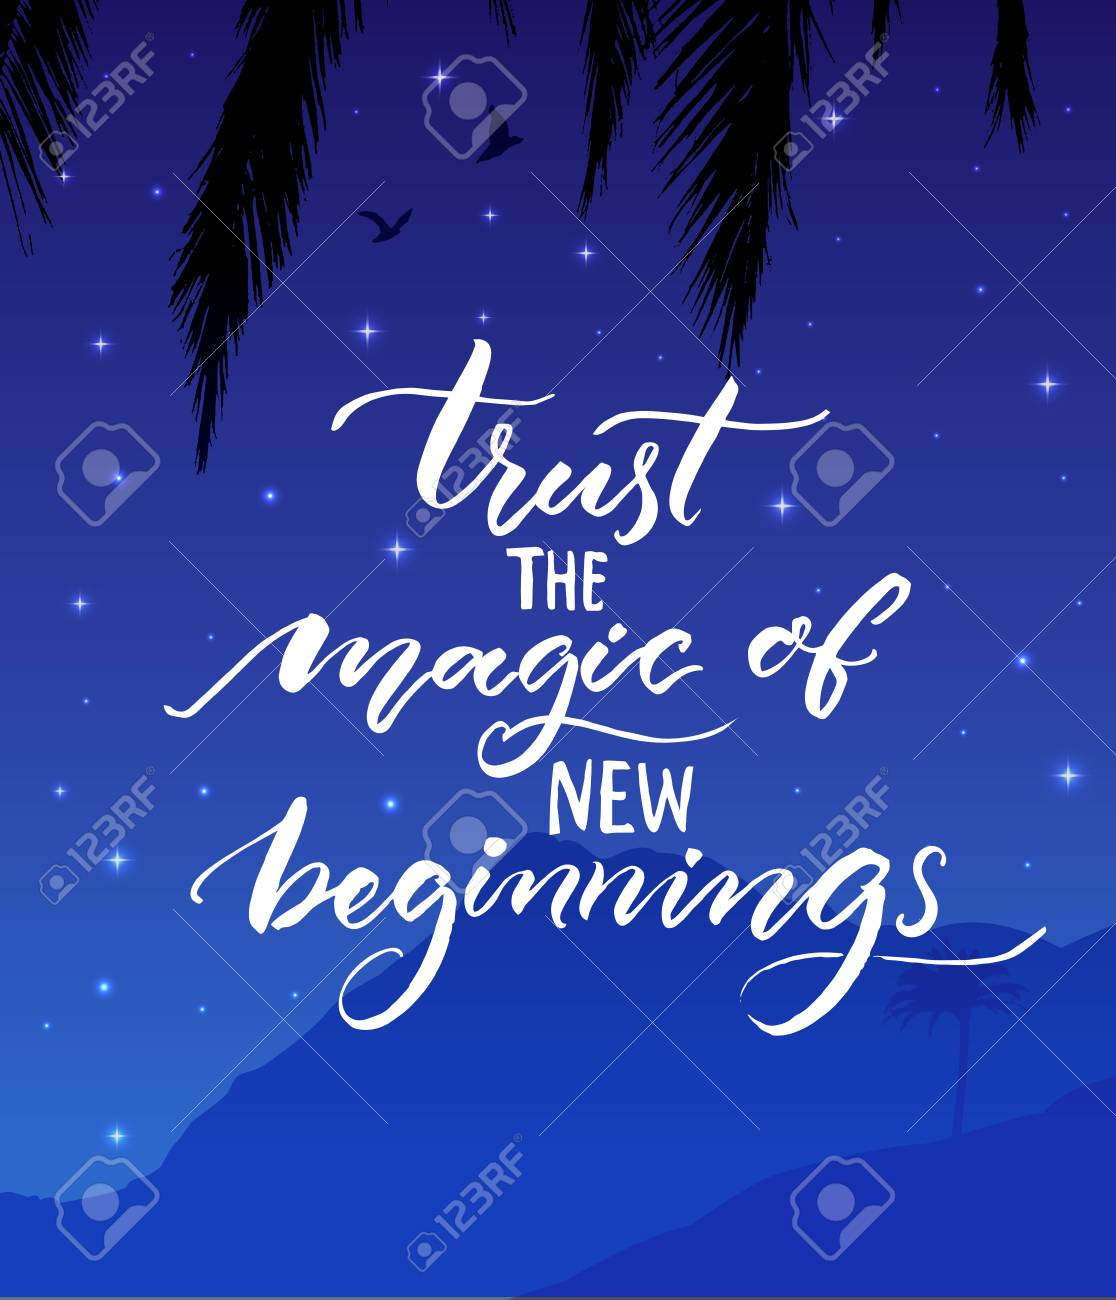 Trust The Magic Of New Beginnings. Inspirational Quote. Modern Calligraphy  On Starry Night Landscape